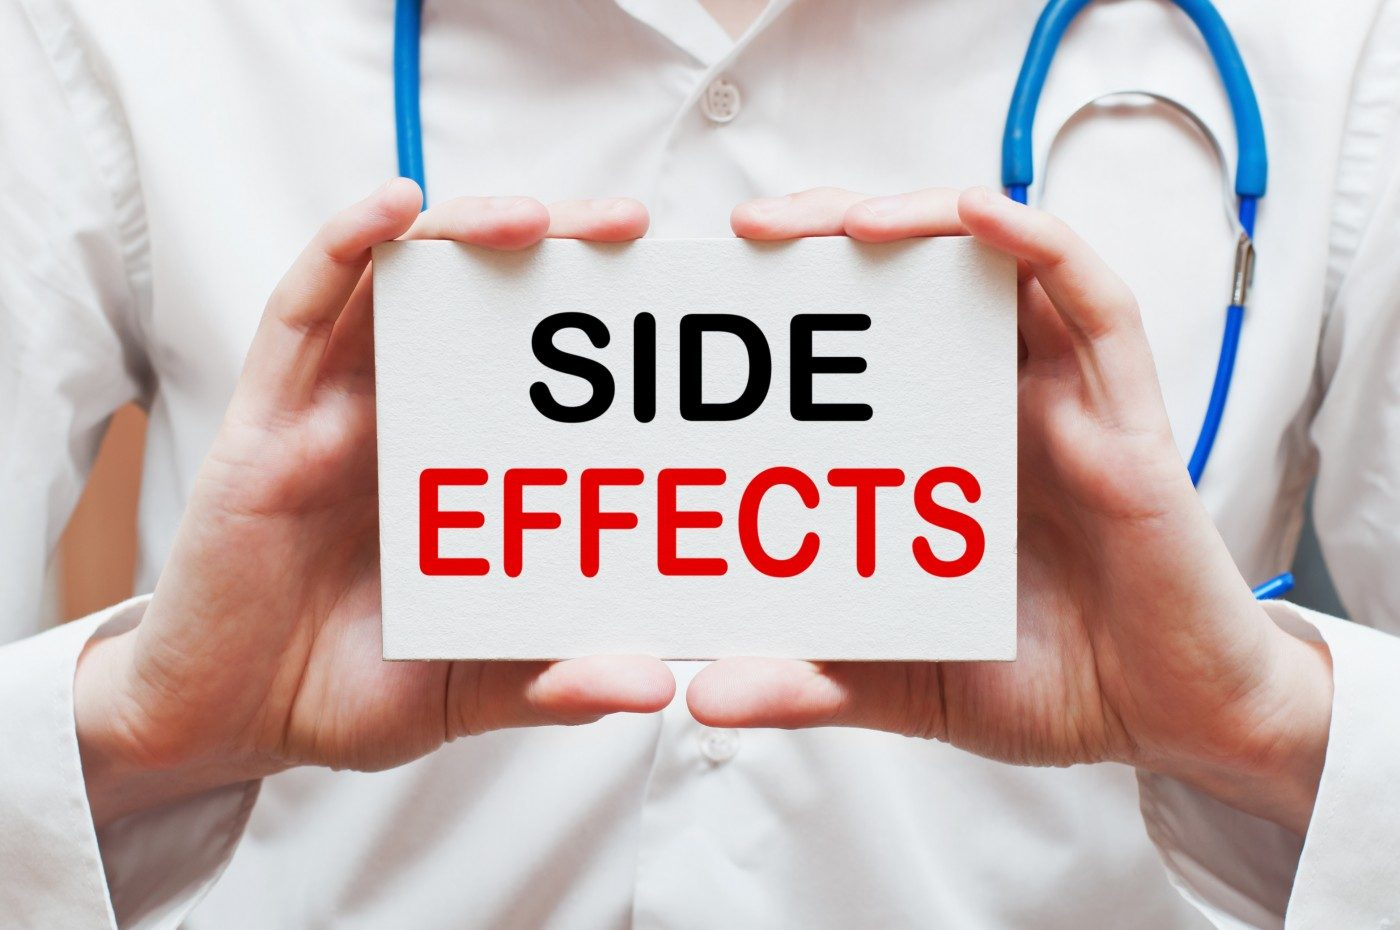 Pandemic side effects